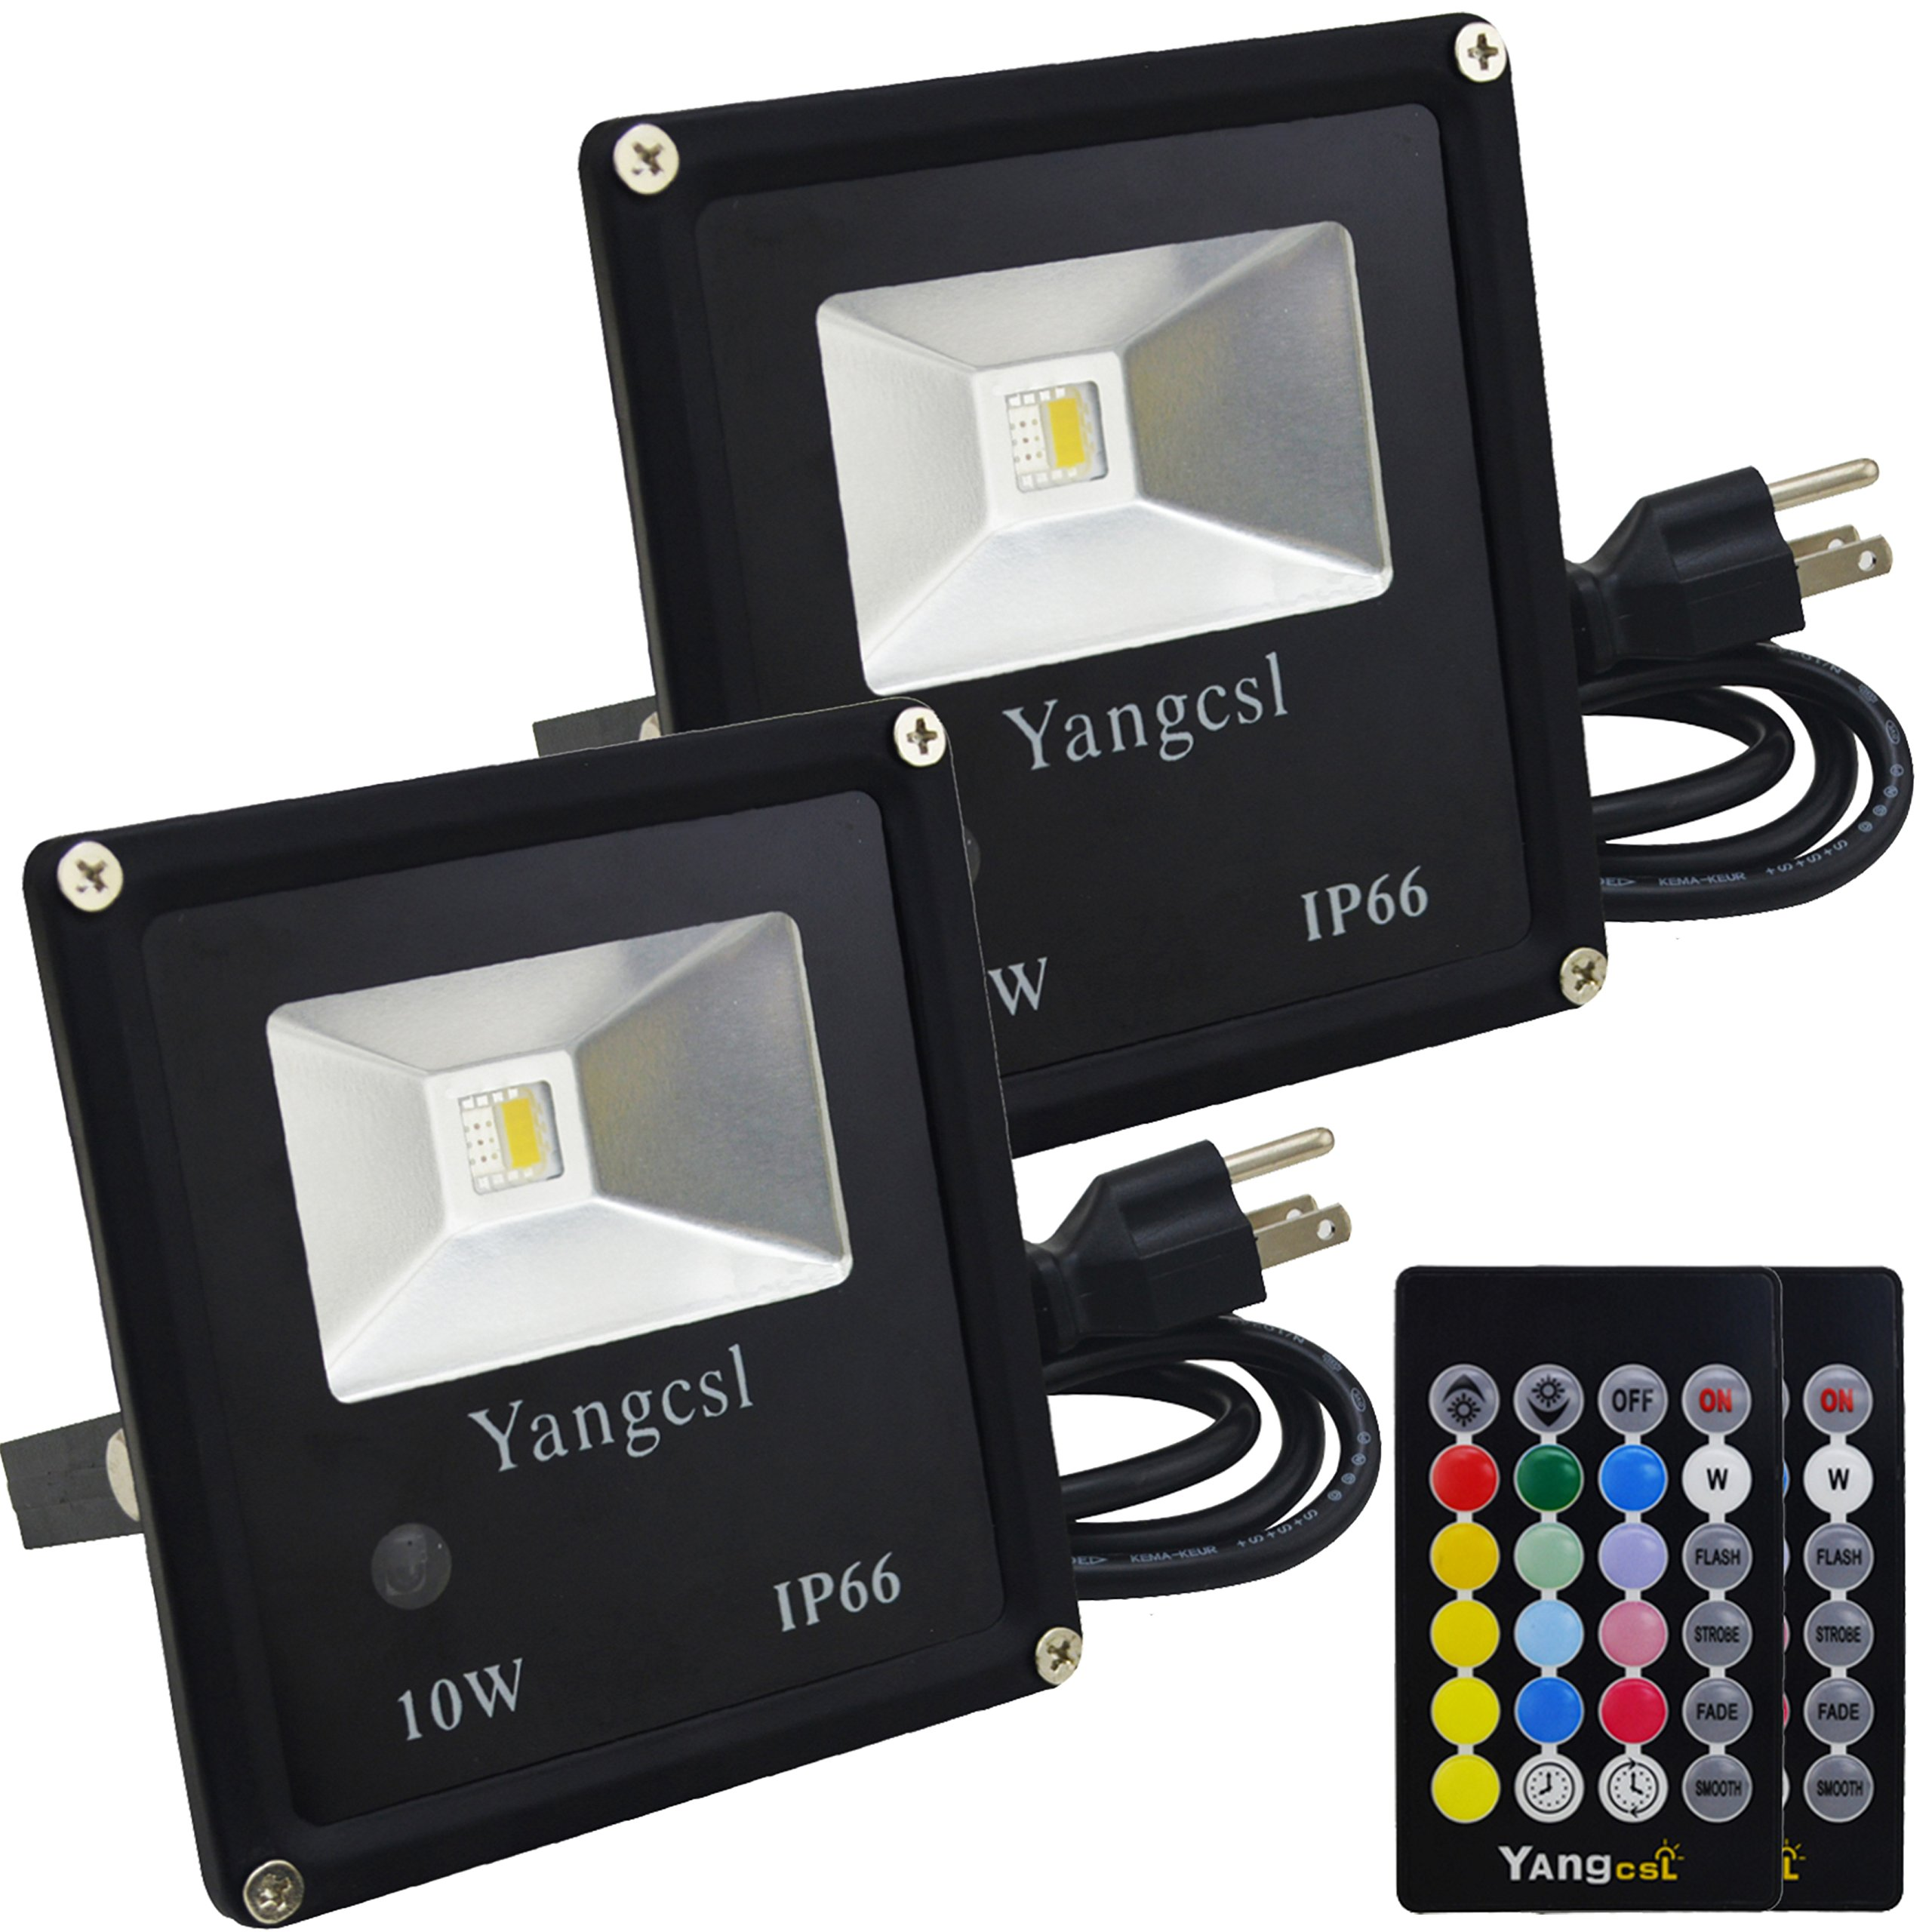 Yangcsl Timing Remote Control 10W RGBW LED Flood Lights, Color Changing LED Security Lights, RGB and Warm White , Waterproof LED Floodlight, US 3-Plug, Wall Washer Light (2 Pack)